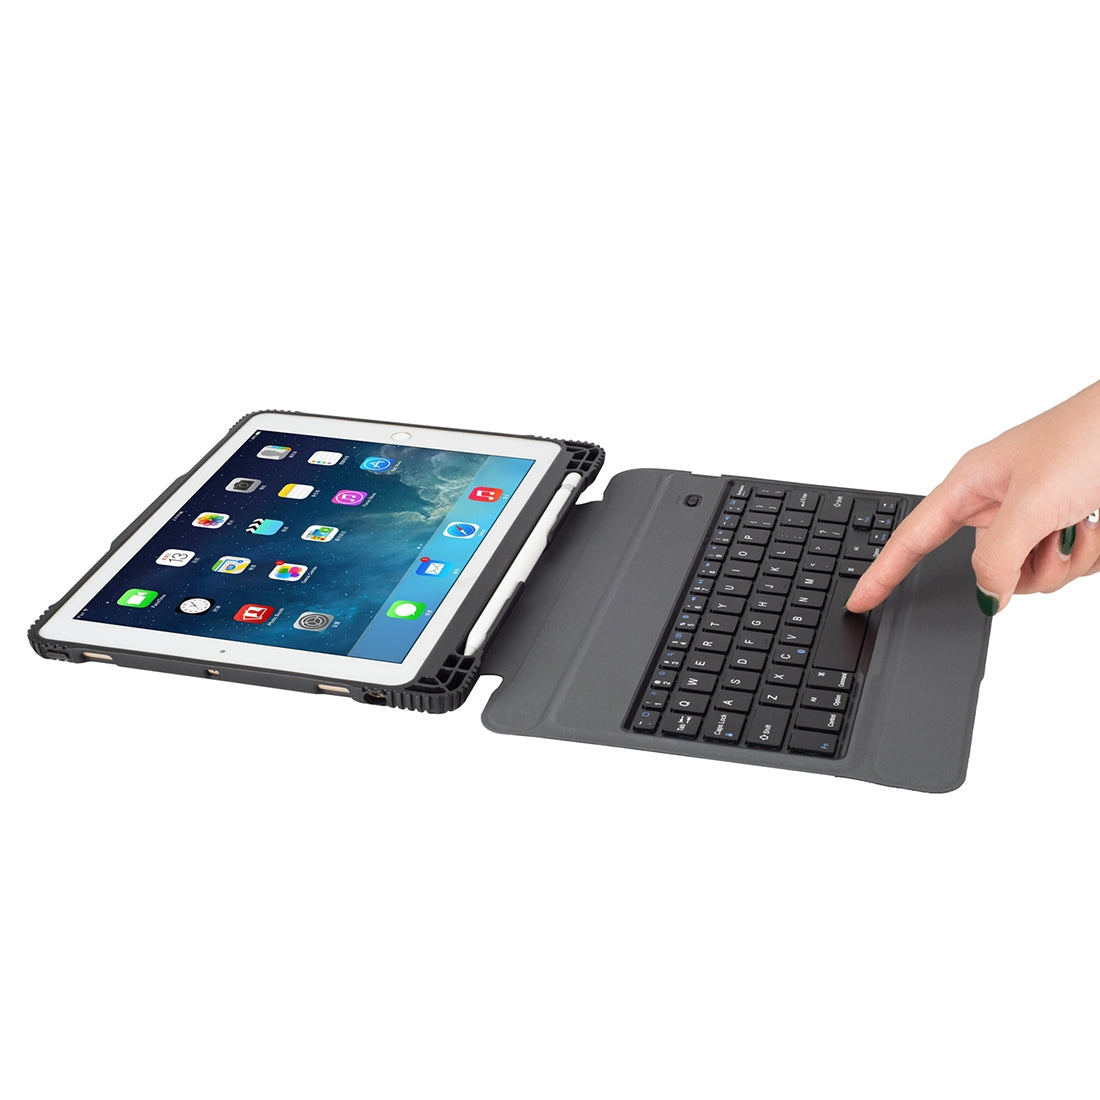 TC107 For iPad Air 2 & Air 1 / Pro 9.7 inch & 2017 iPad & 2018 iPad Detachable Ultra-thin Full Coverage Drop-proof Plastic Bluetooth Keyboard Leather Cover with Pen Slot & Stand Function (Black)